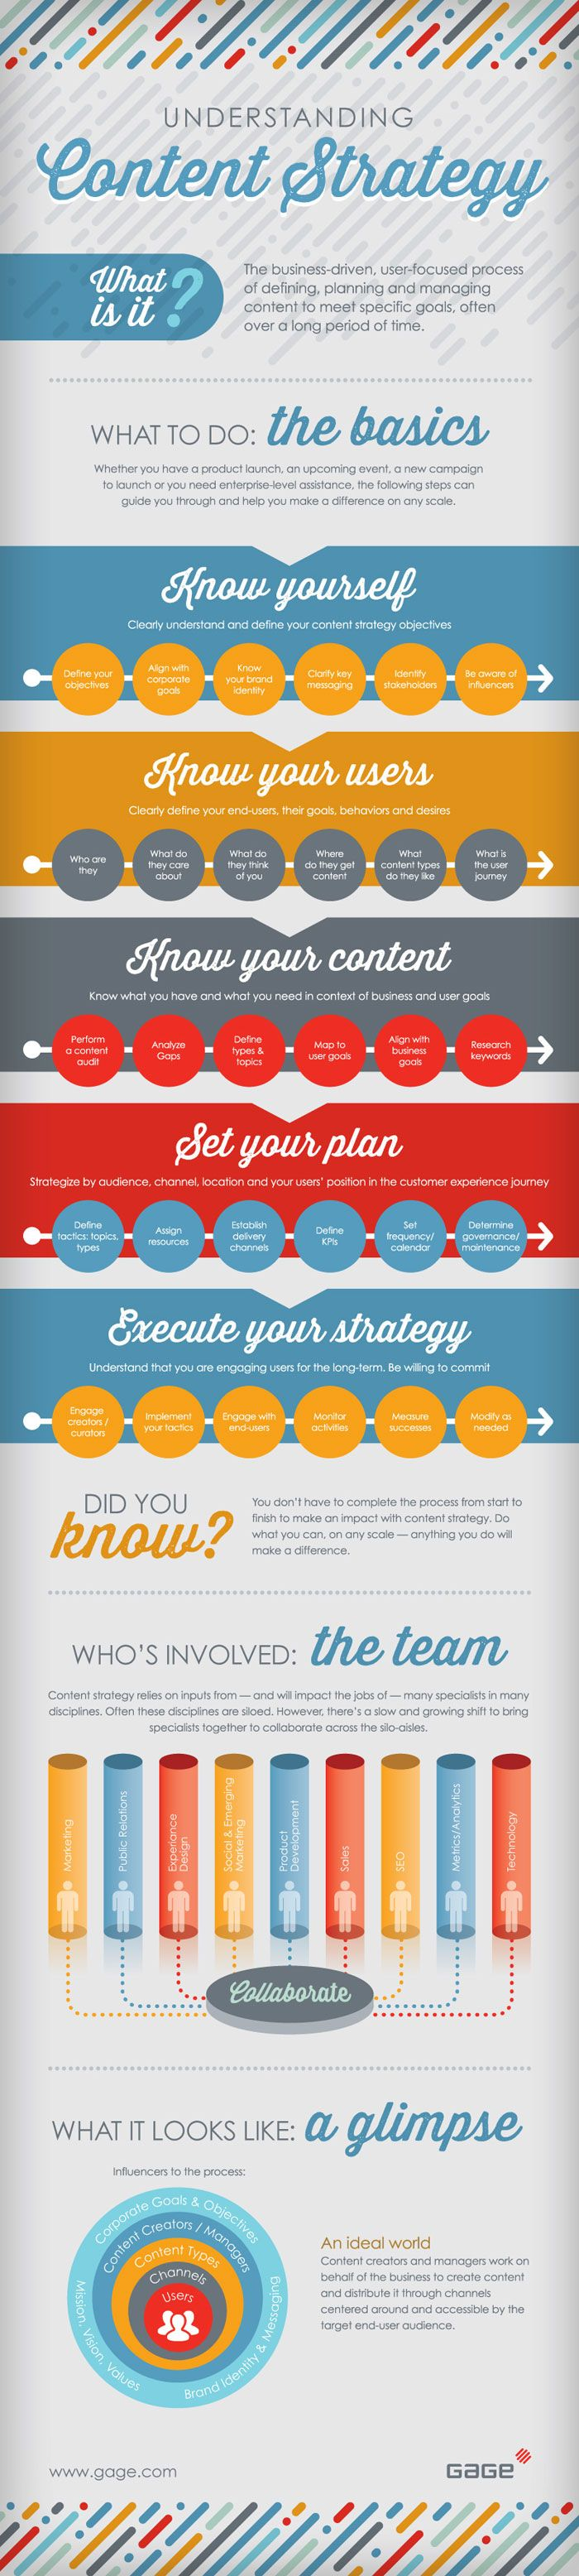 Understanding #Content #Strategy. #Marketing #Infographic